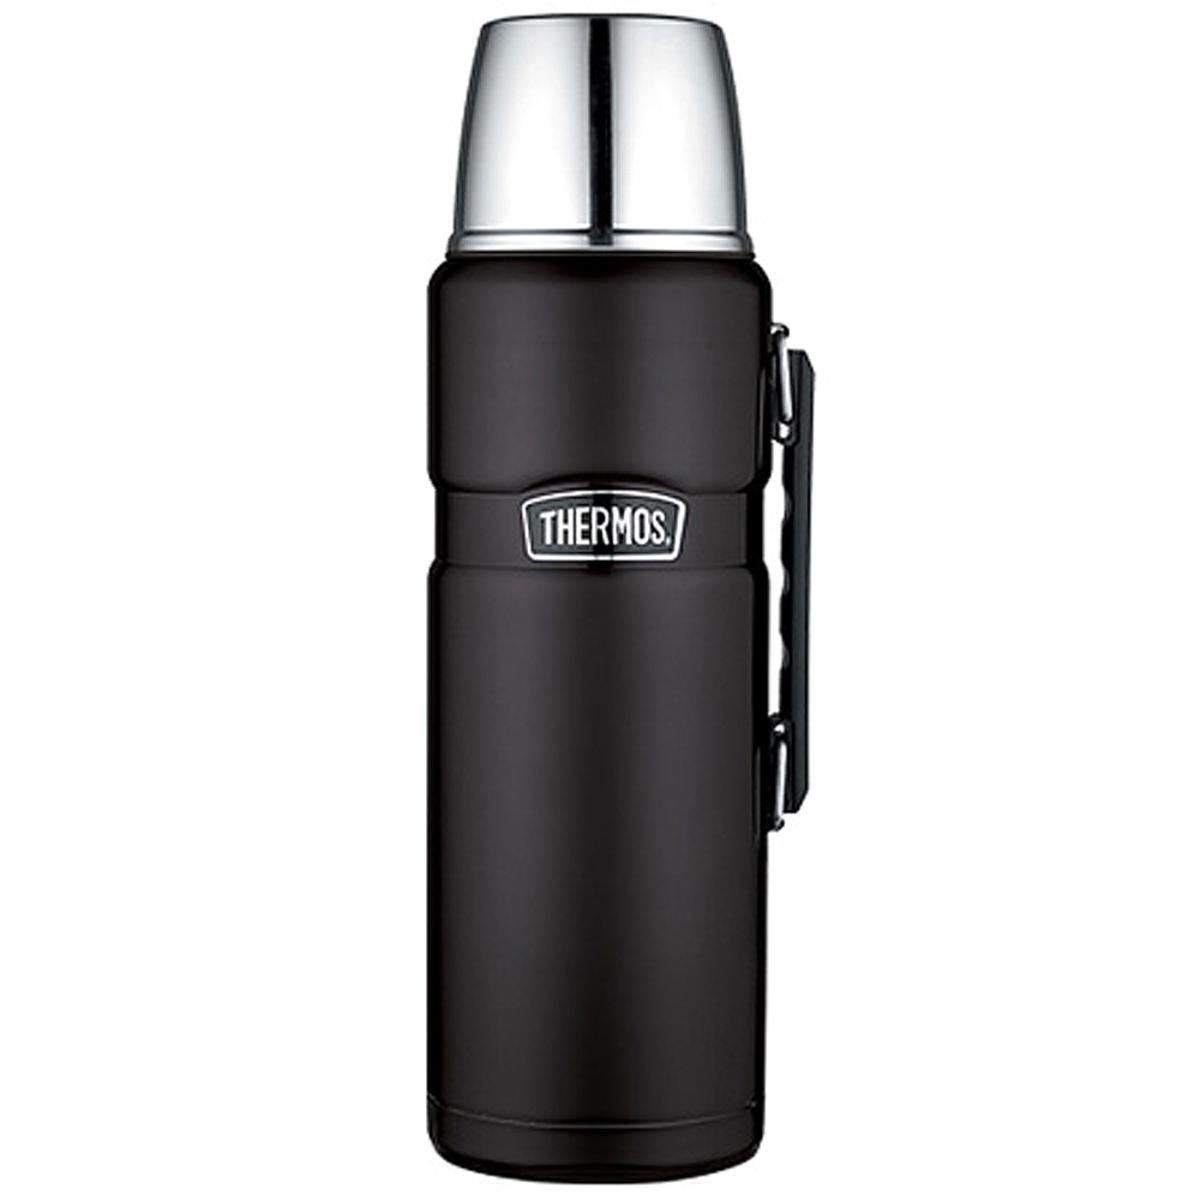 Thermos Stainless King Vacuum Insulated Beverage Bottle (Black - 2L)